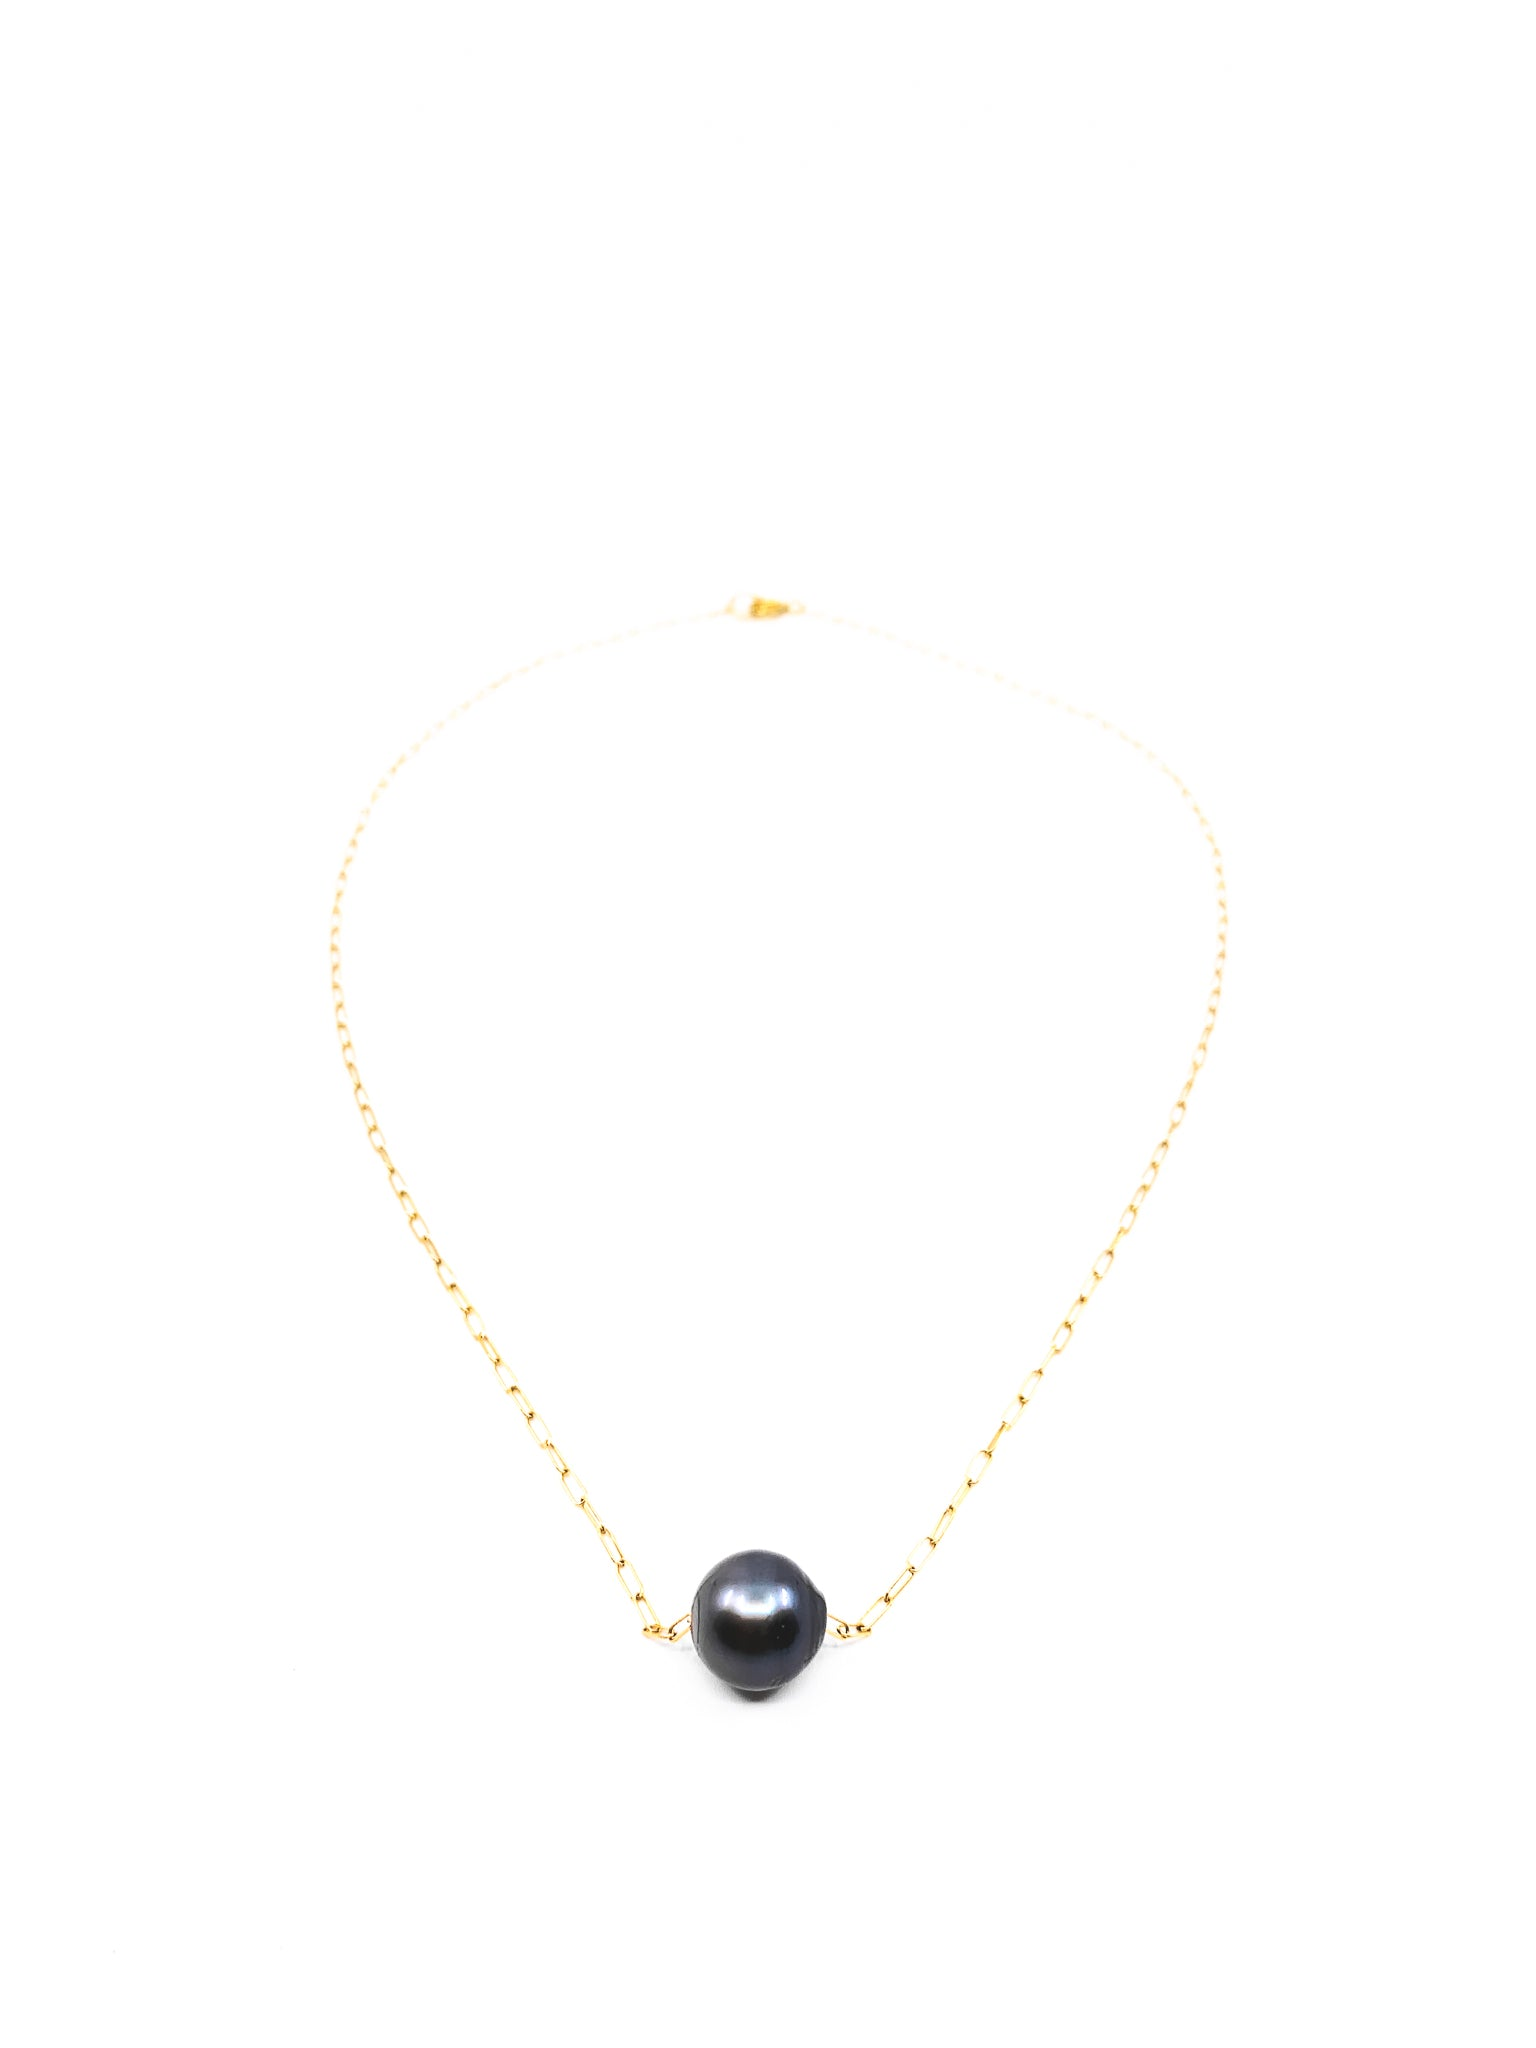 floating tahitian pearl gold chain necklace by eve black jewelry made in hawaii